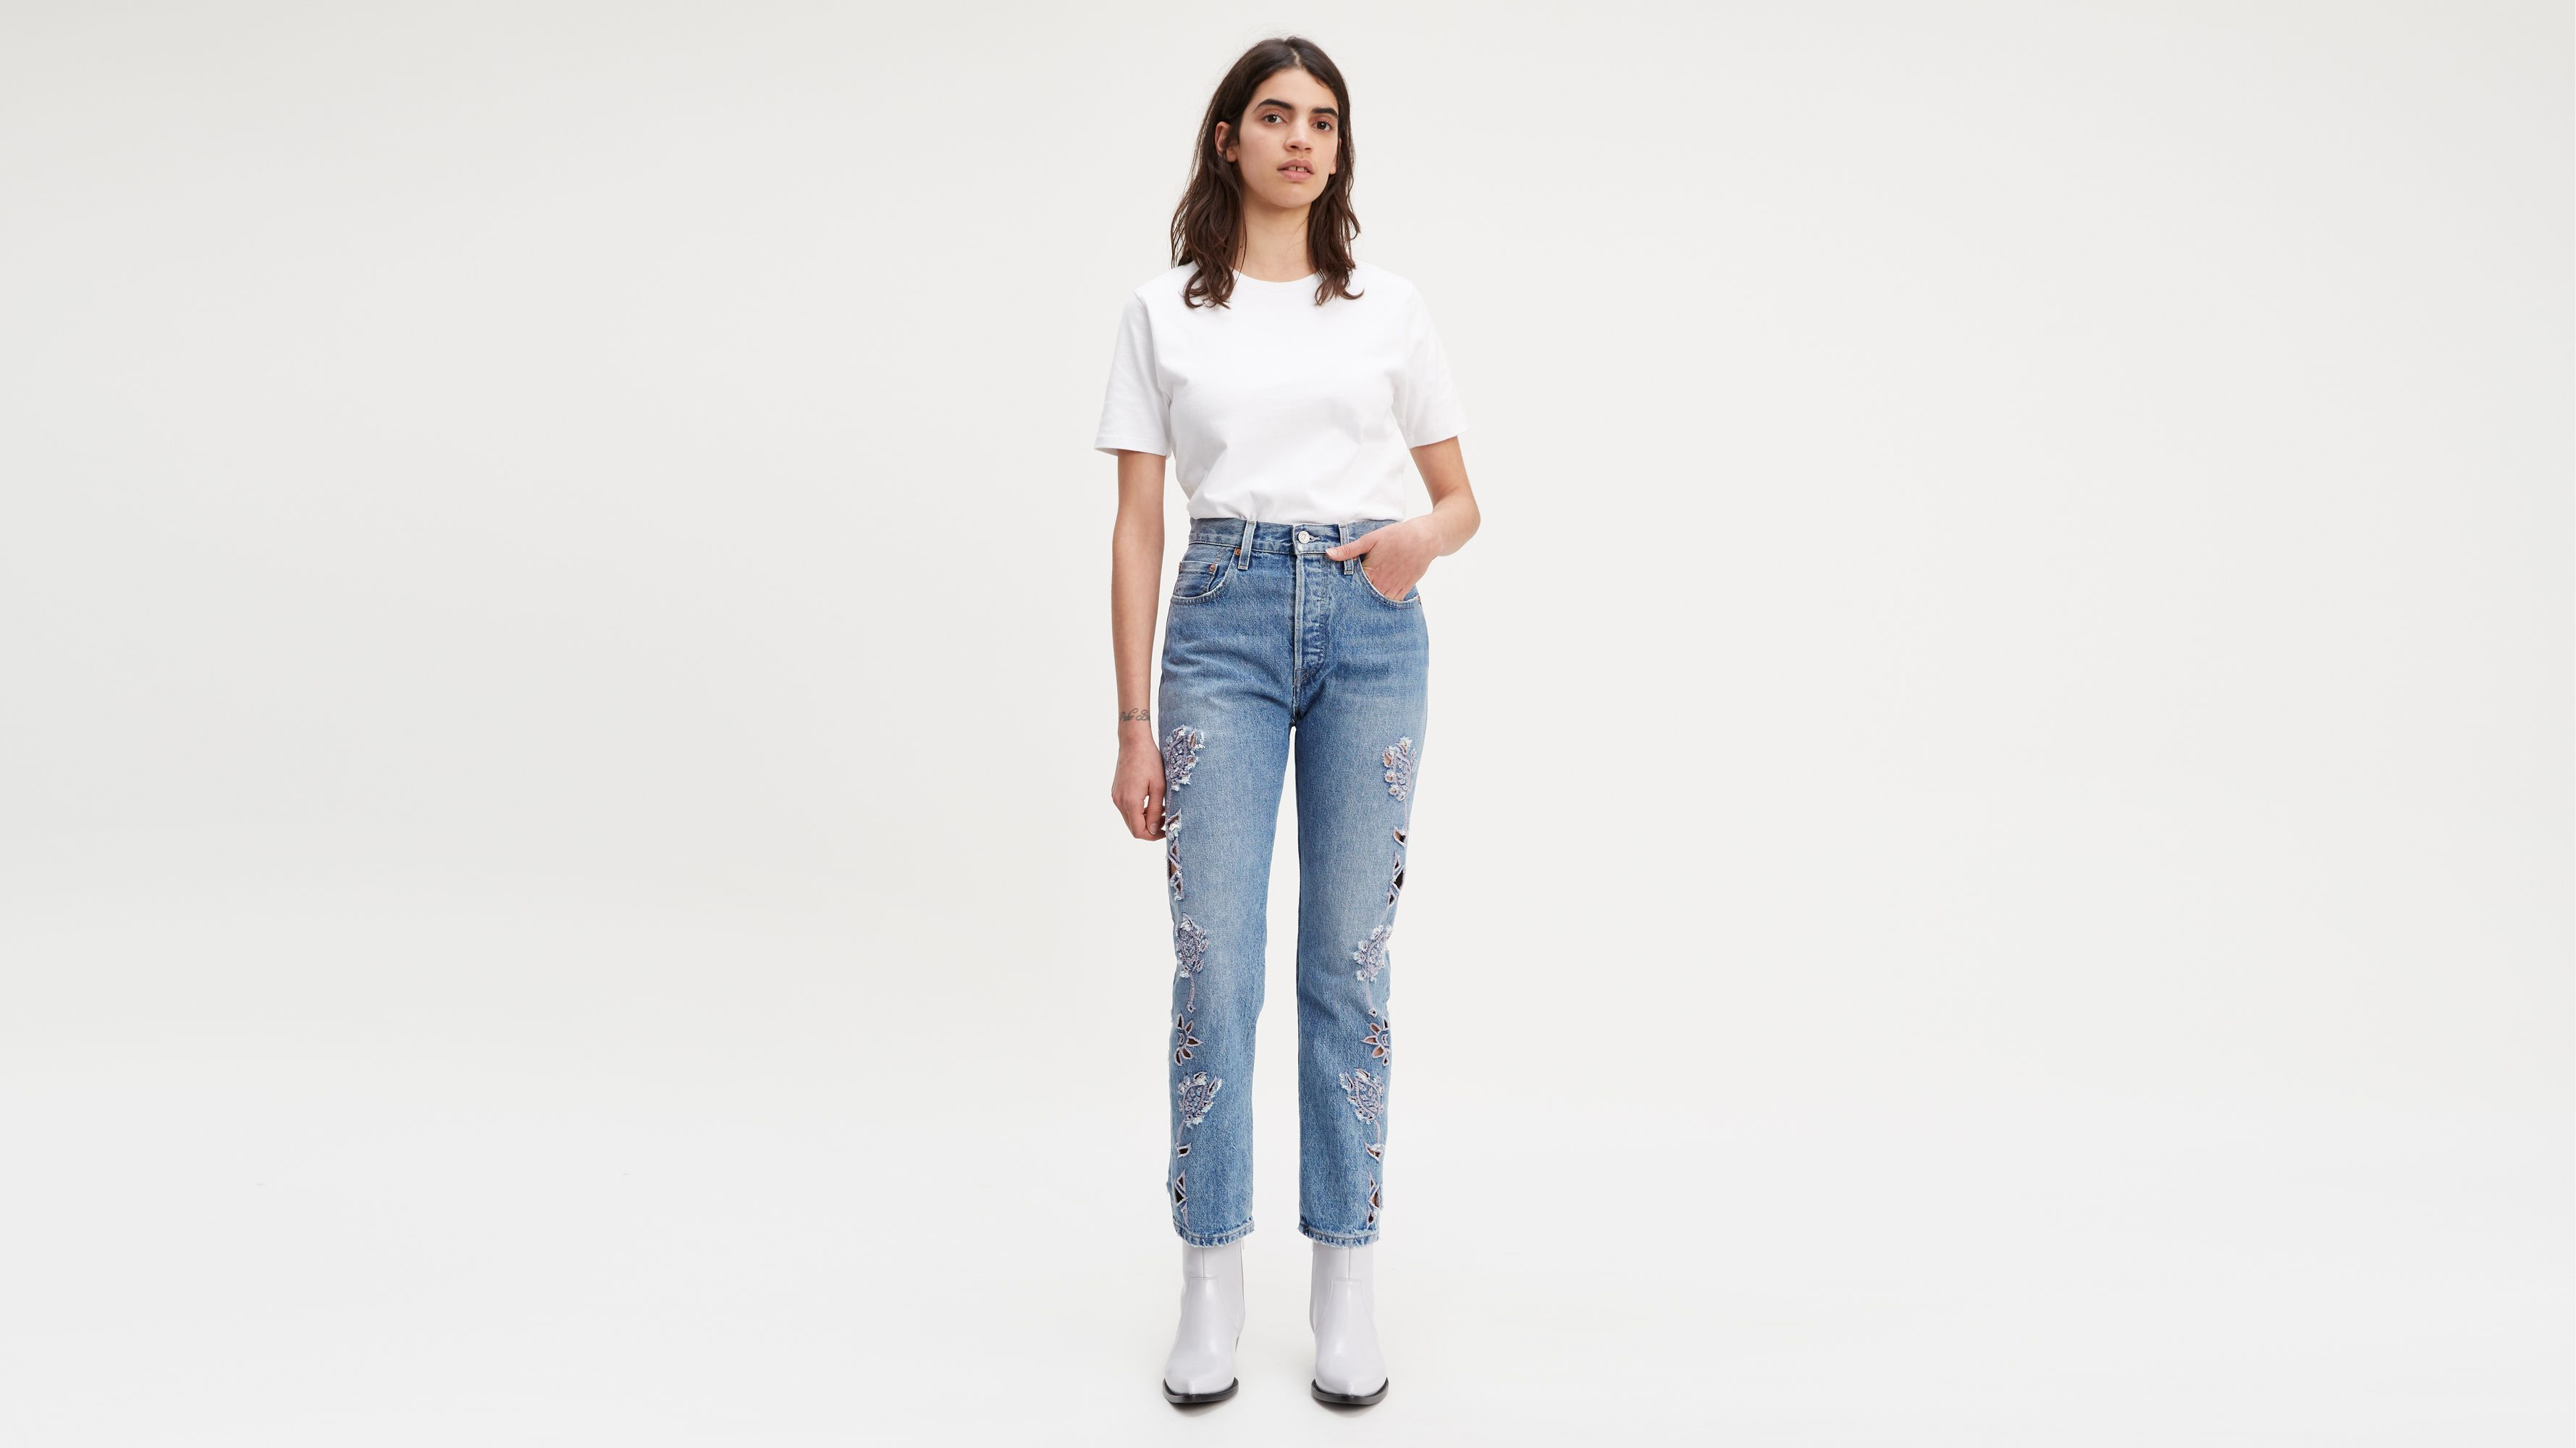 JeansRise High Uk Levi's Waisted Women's rodxeWCB